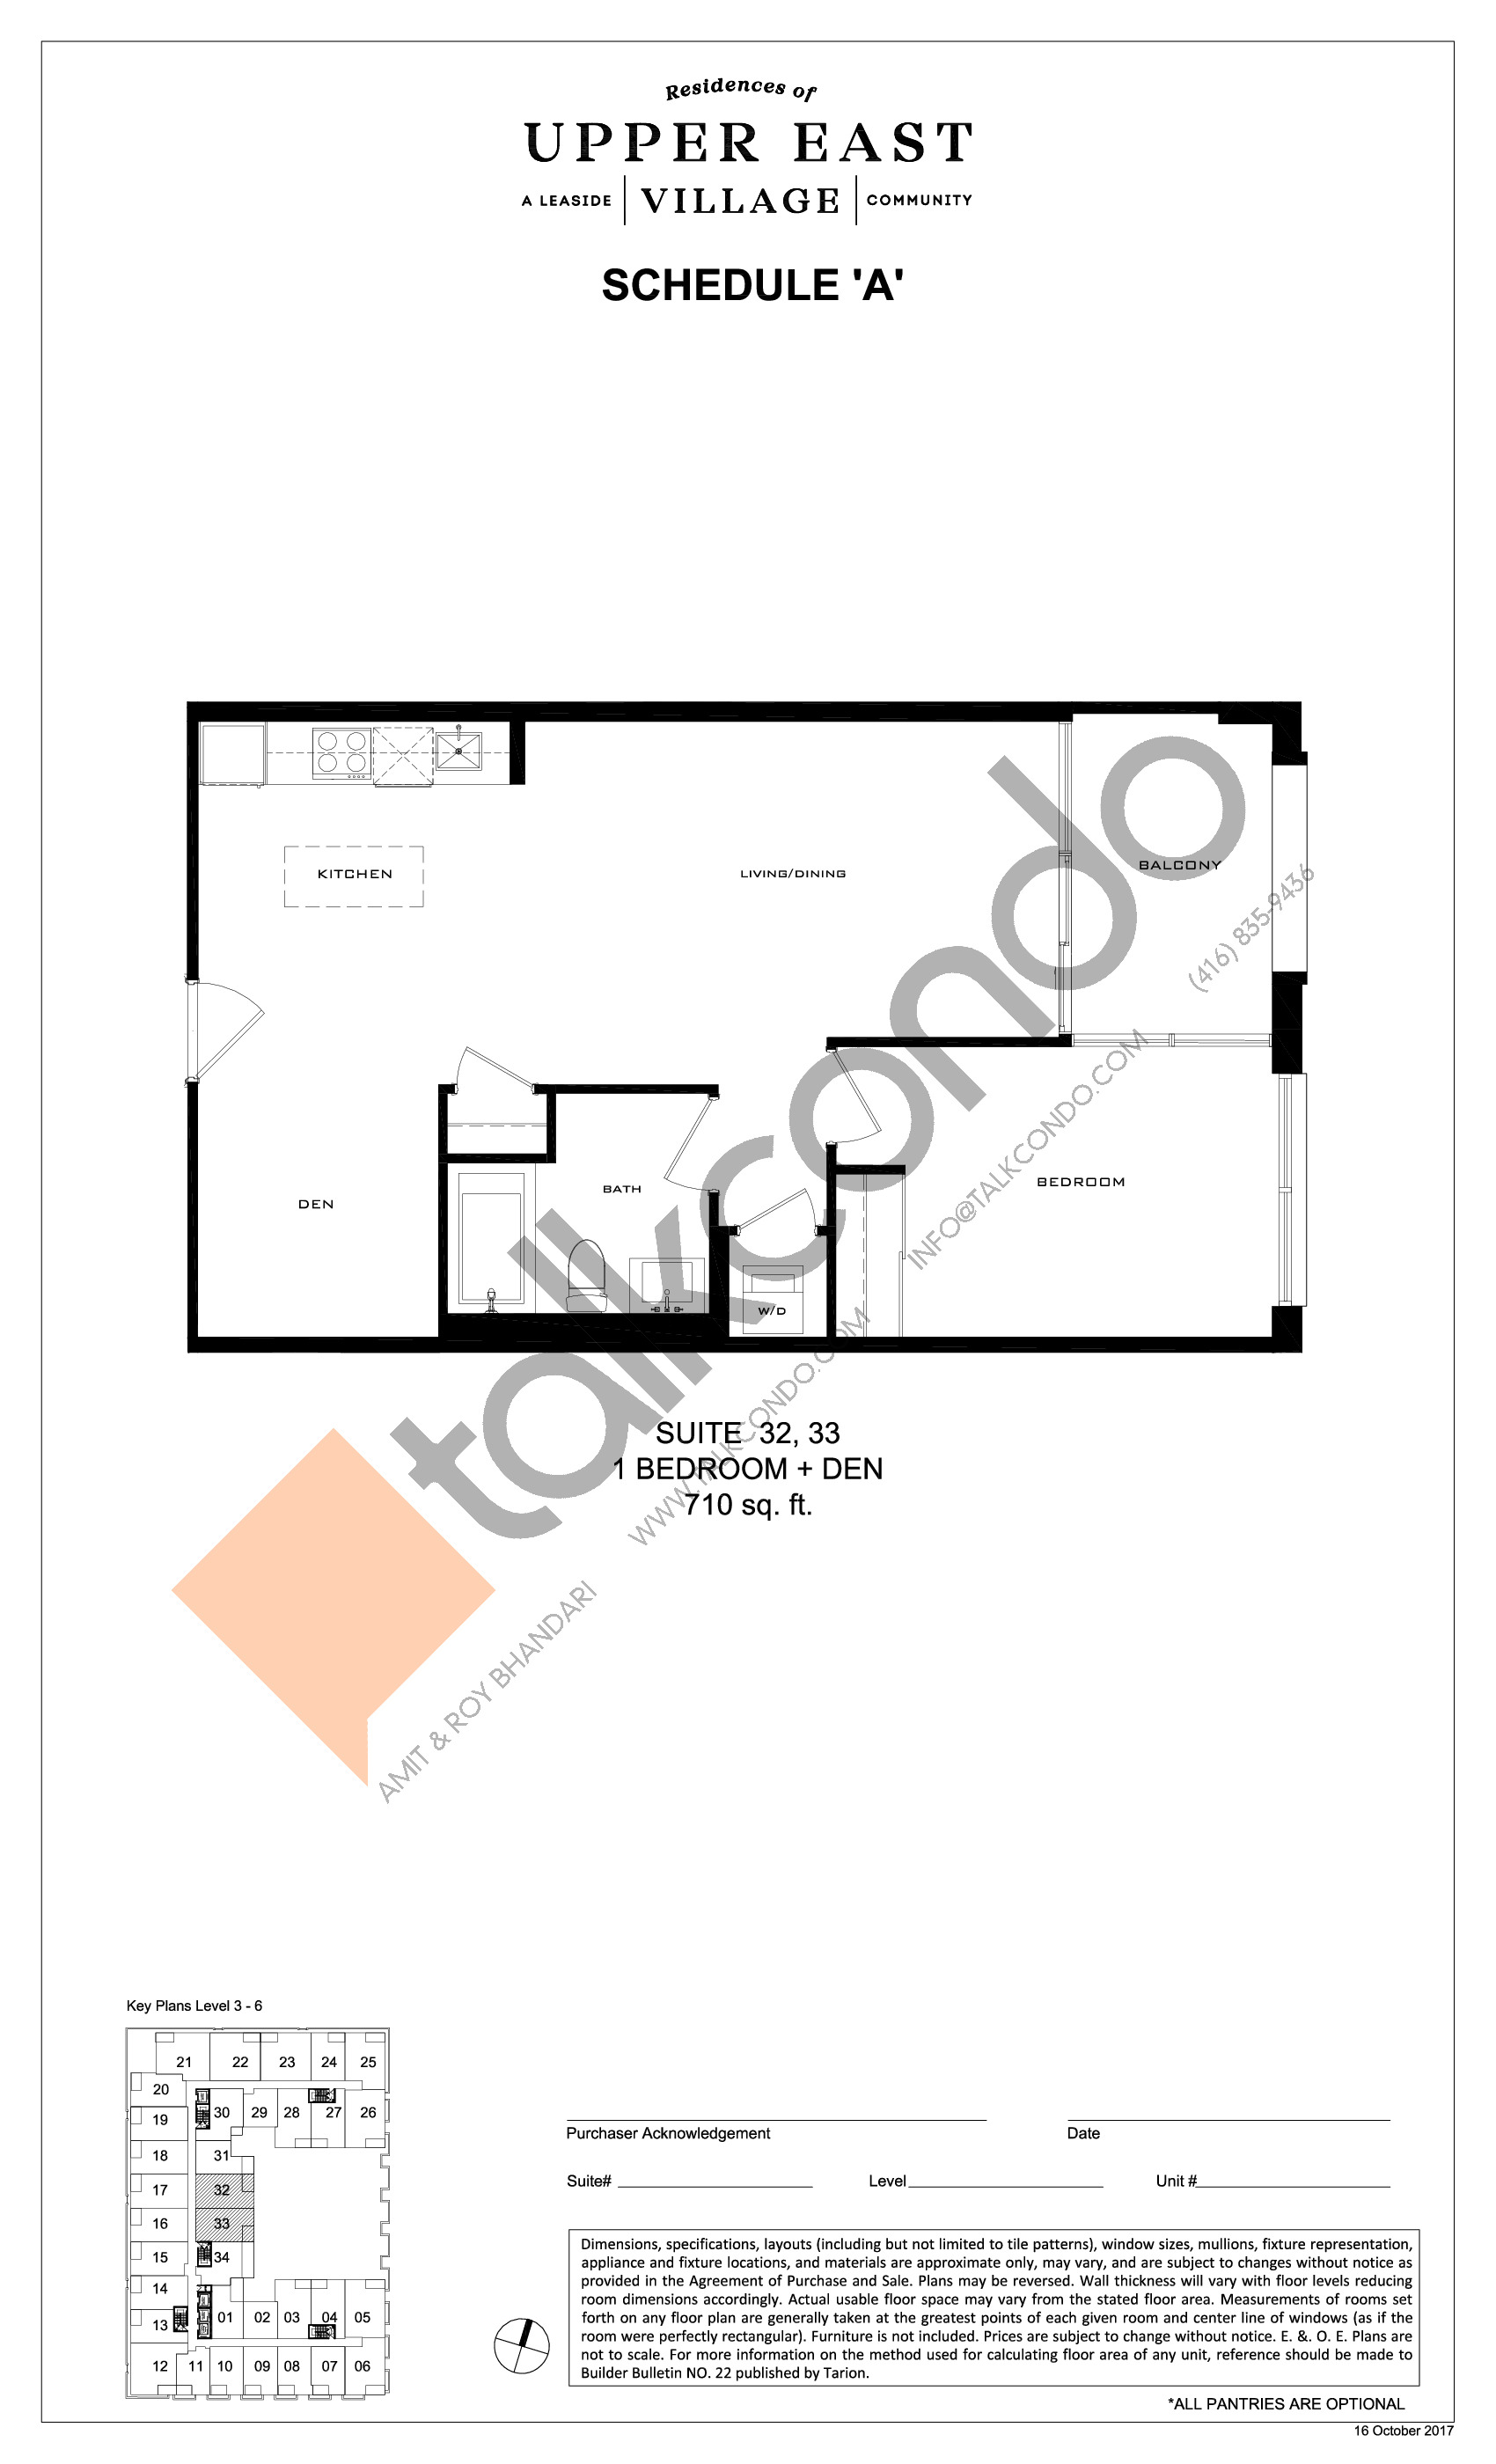 Suite 32, 33 Floor Plan at Upper East Village Condos - 710 sq.ft